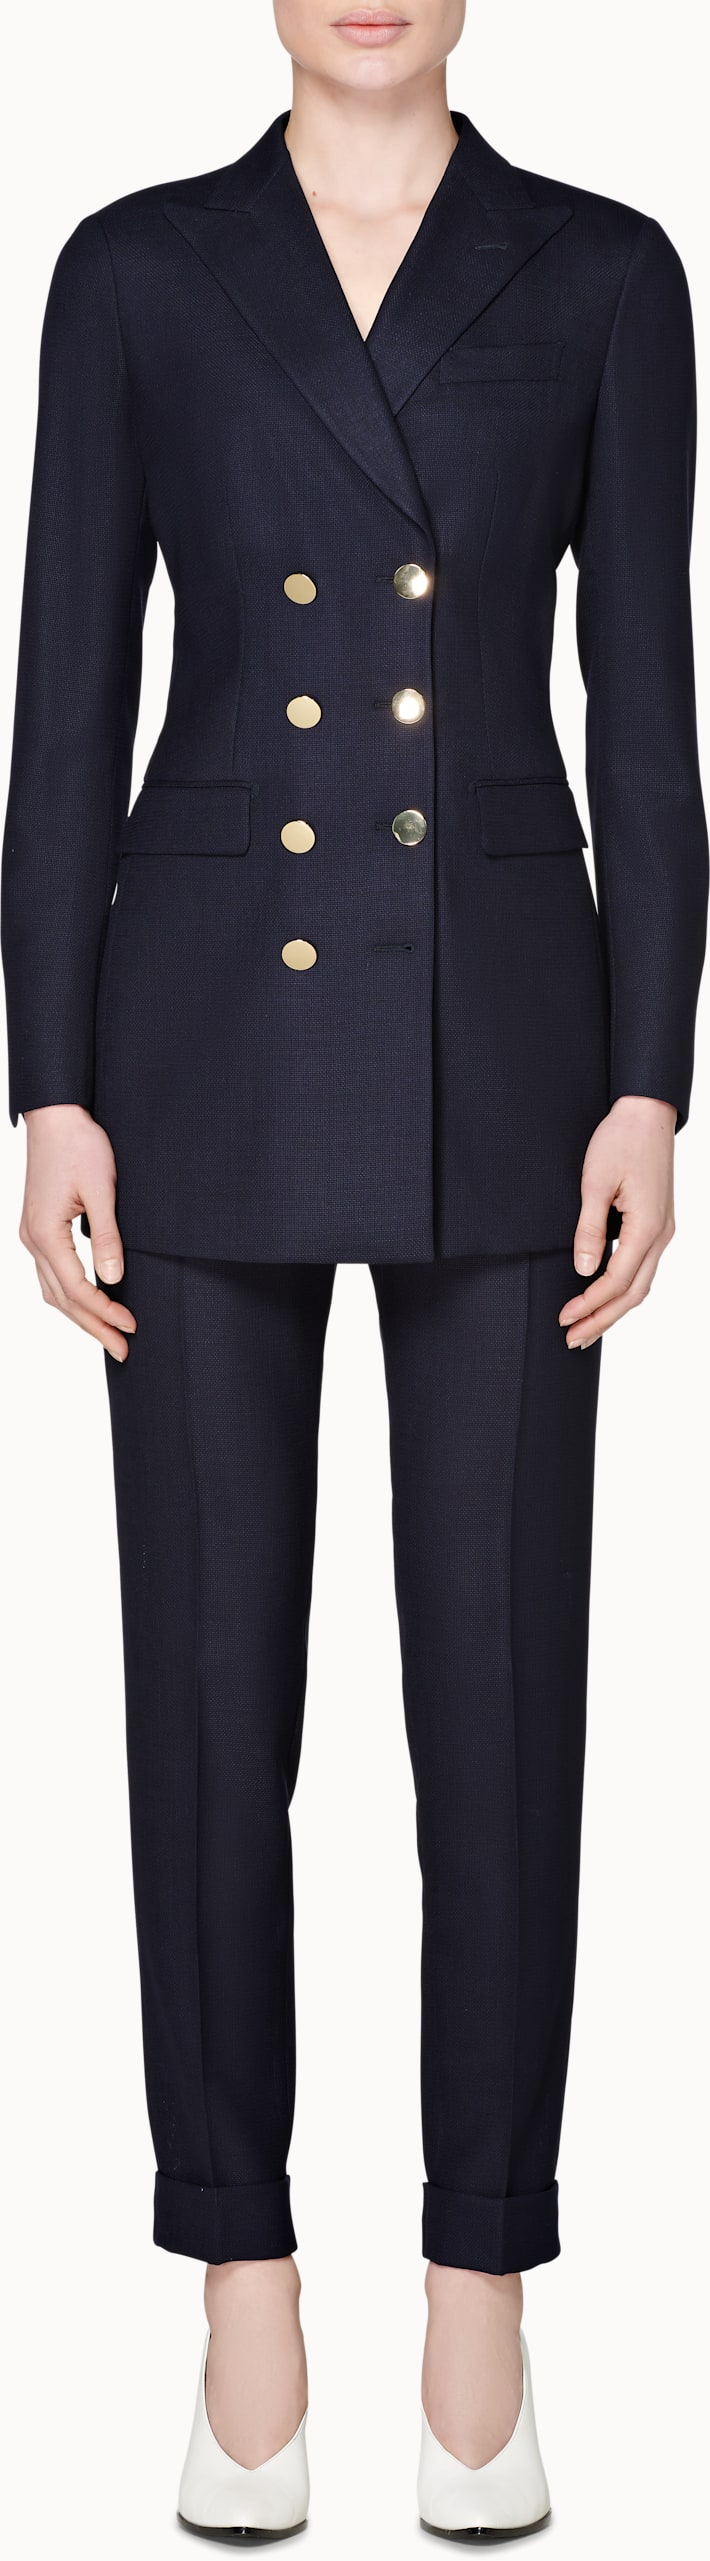 Cameron Navy Golden Button Suit